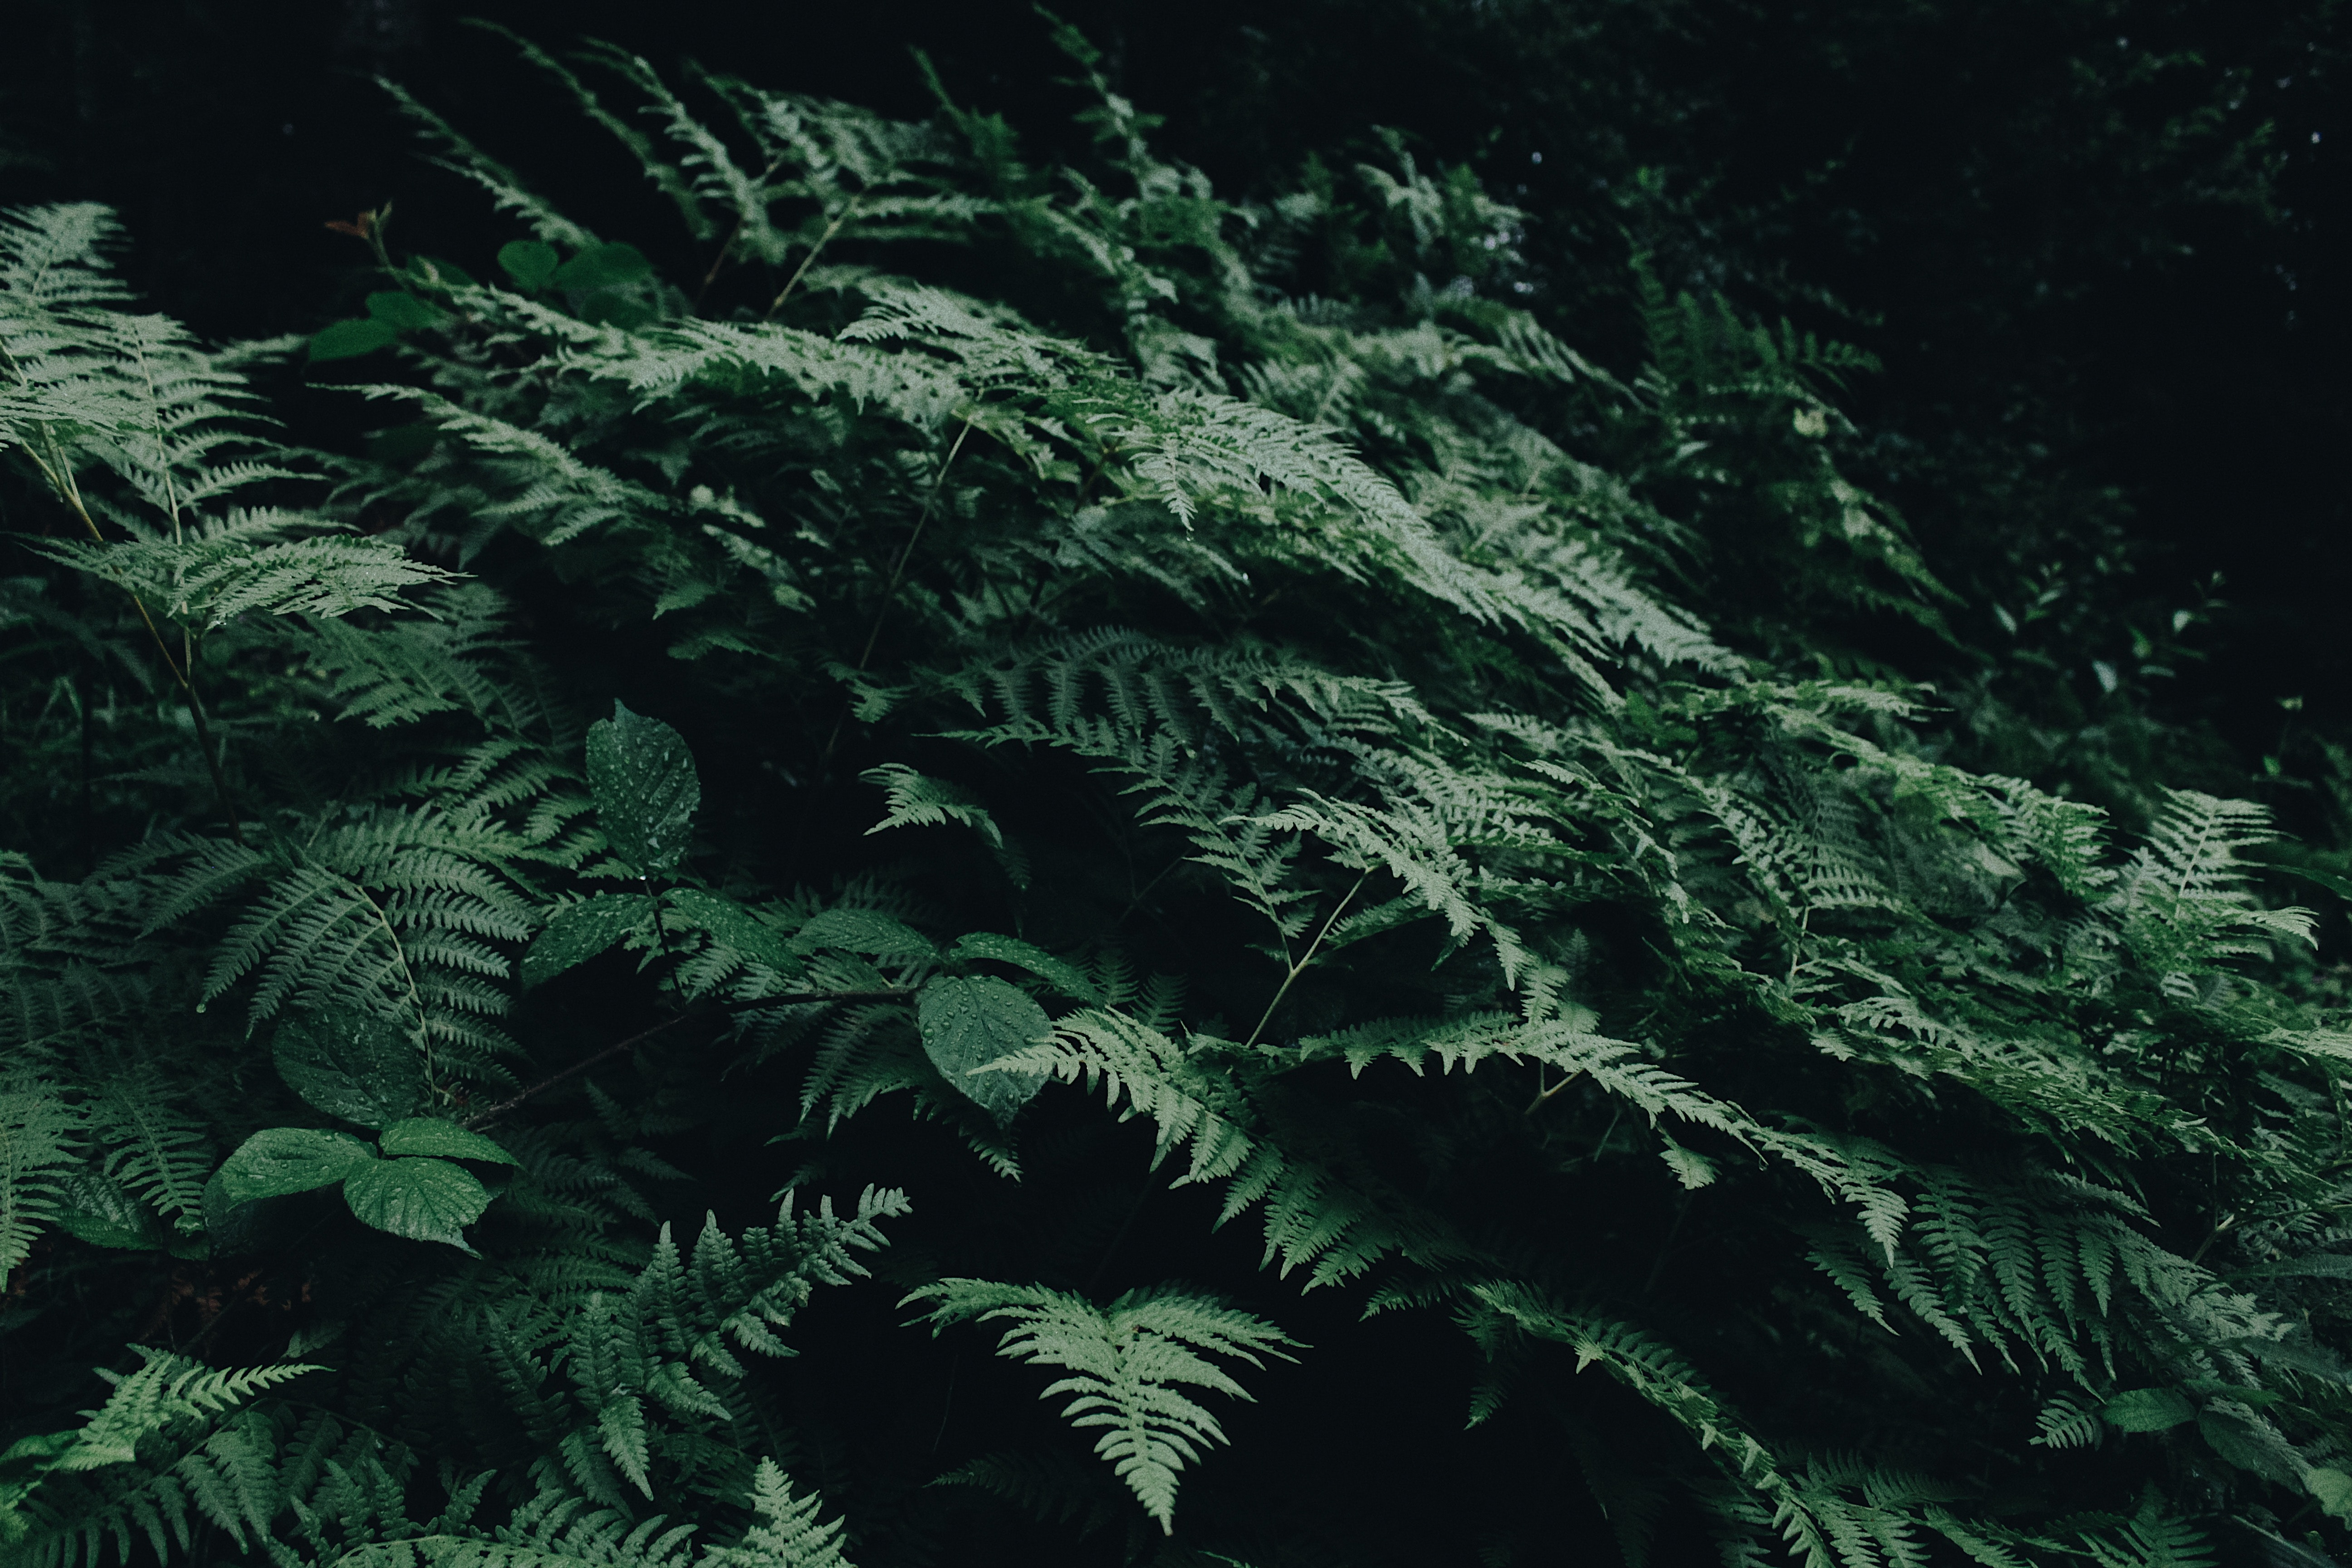 abstract-conifer-day-1028223